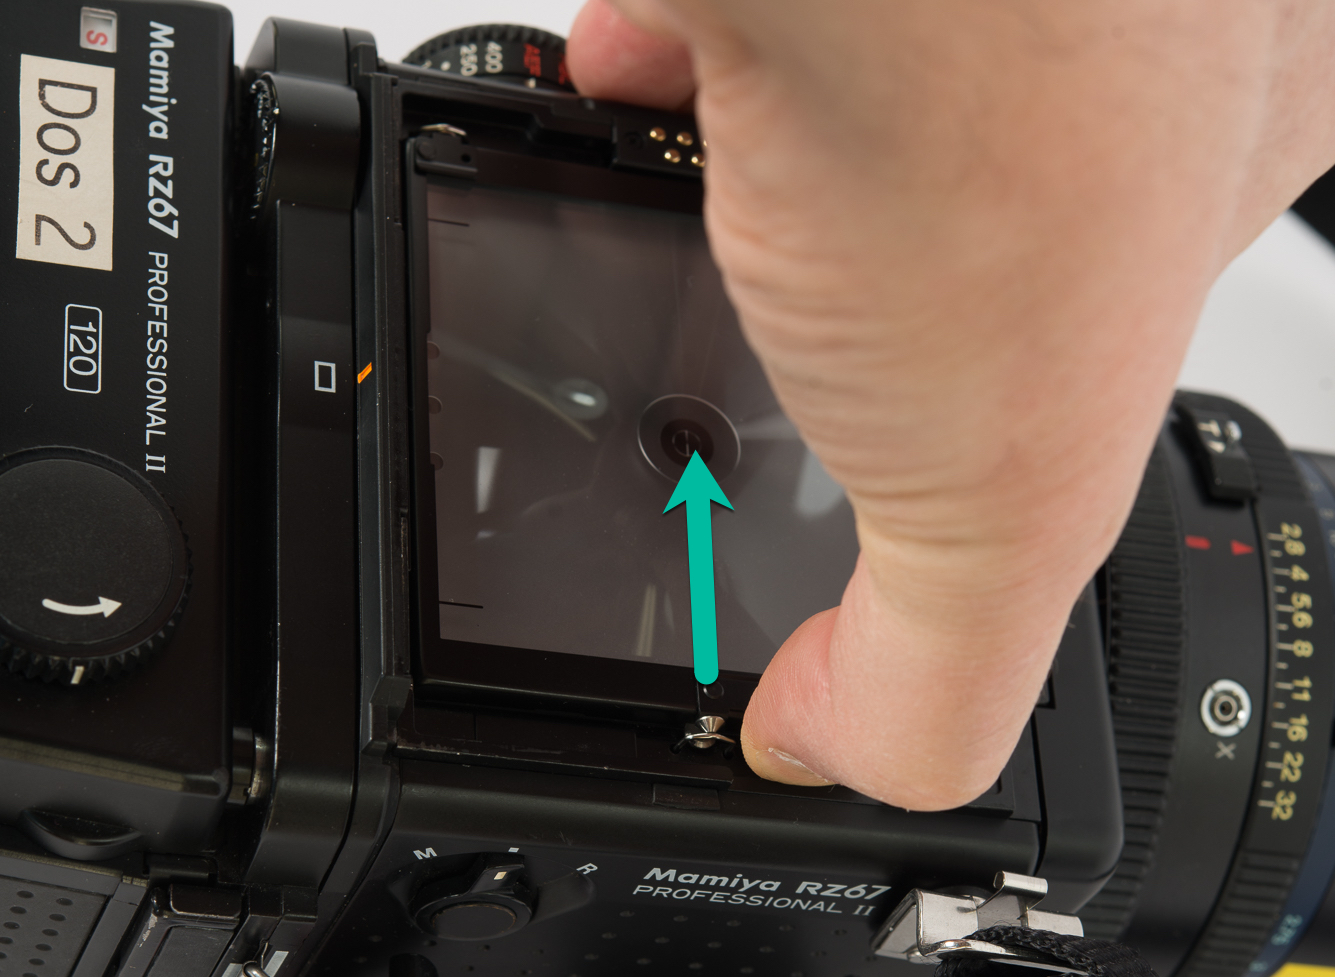 Mamiya RZ67 - remove the focus screen (part 1)